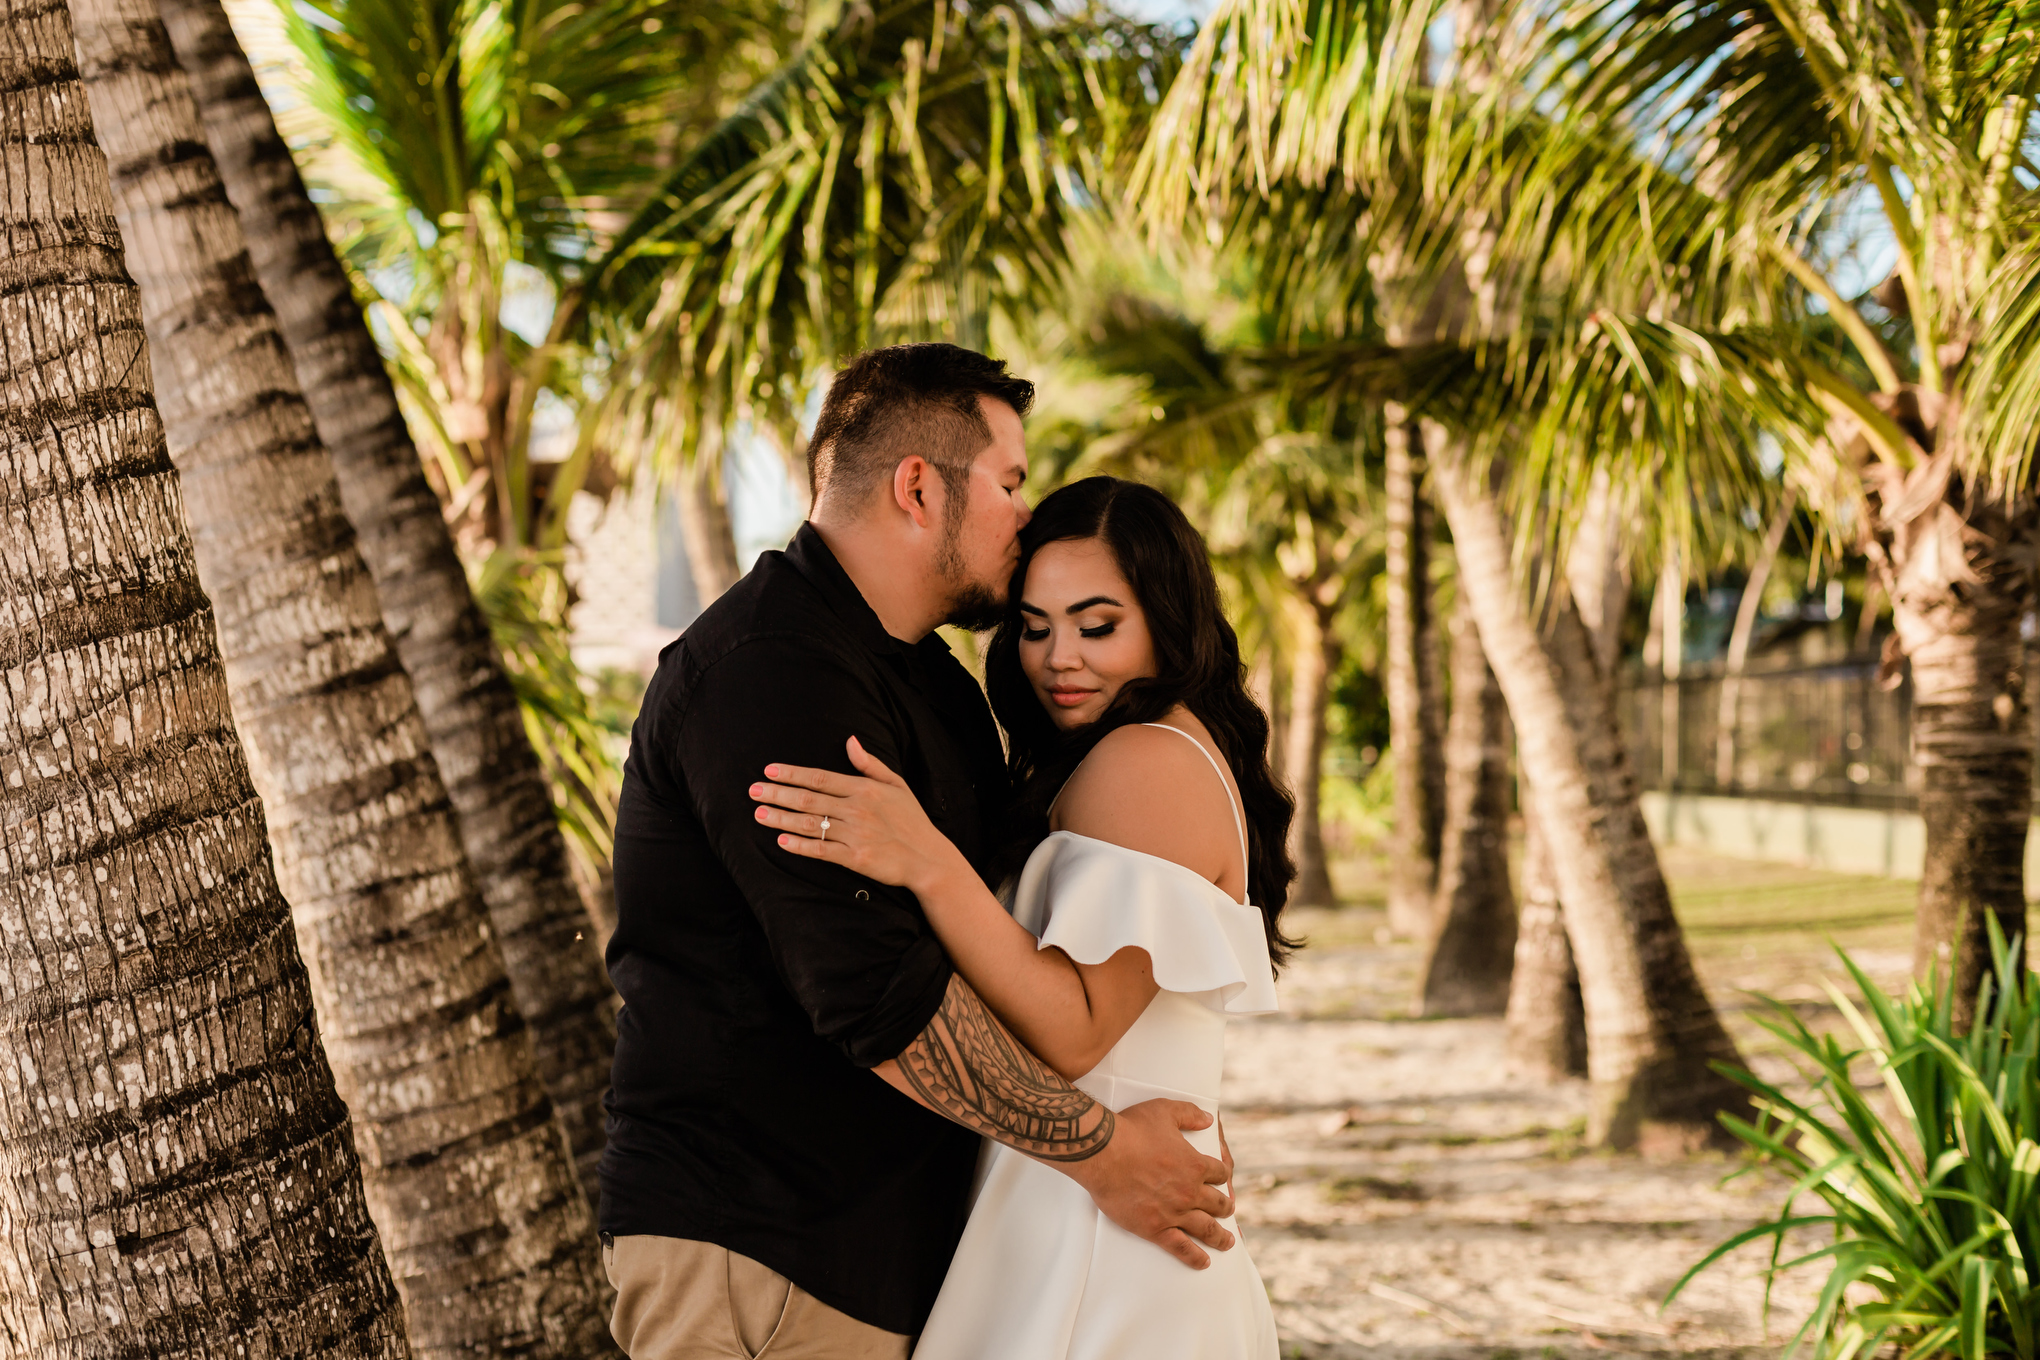 21PIXELS_Guam_Engagement_Photographer167.JPG